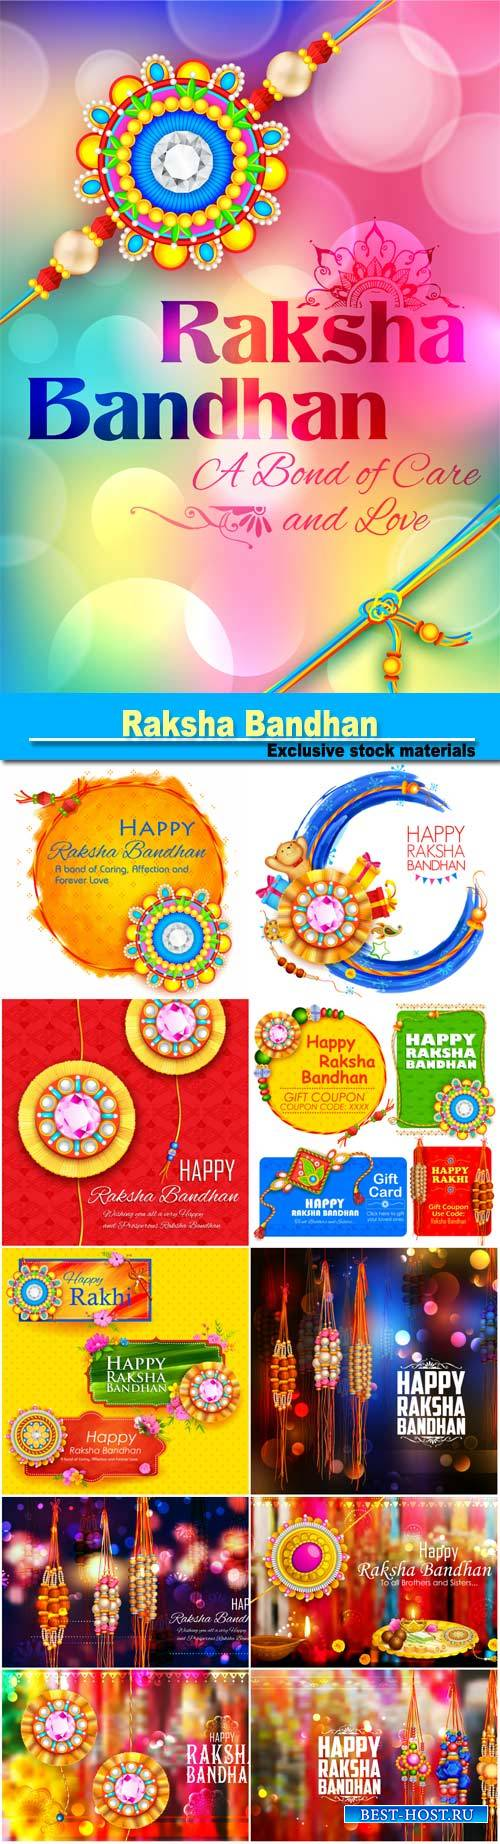 Raksha Bandhan, Indian festival for brother and sister bonding celebration